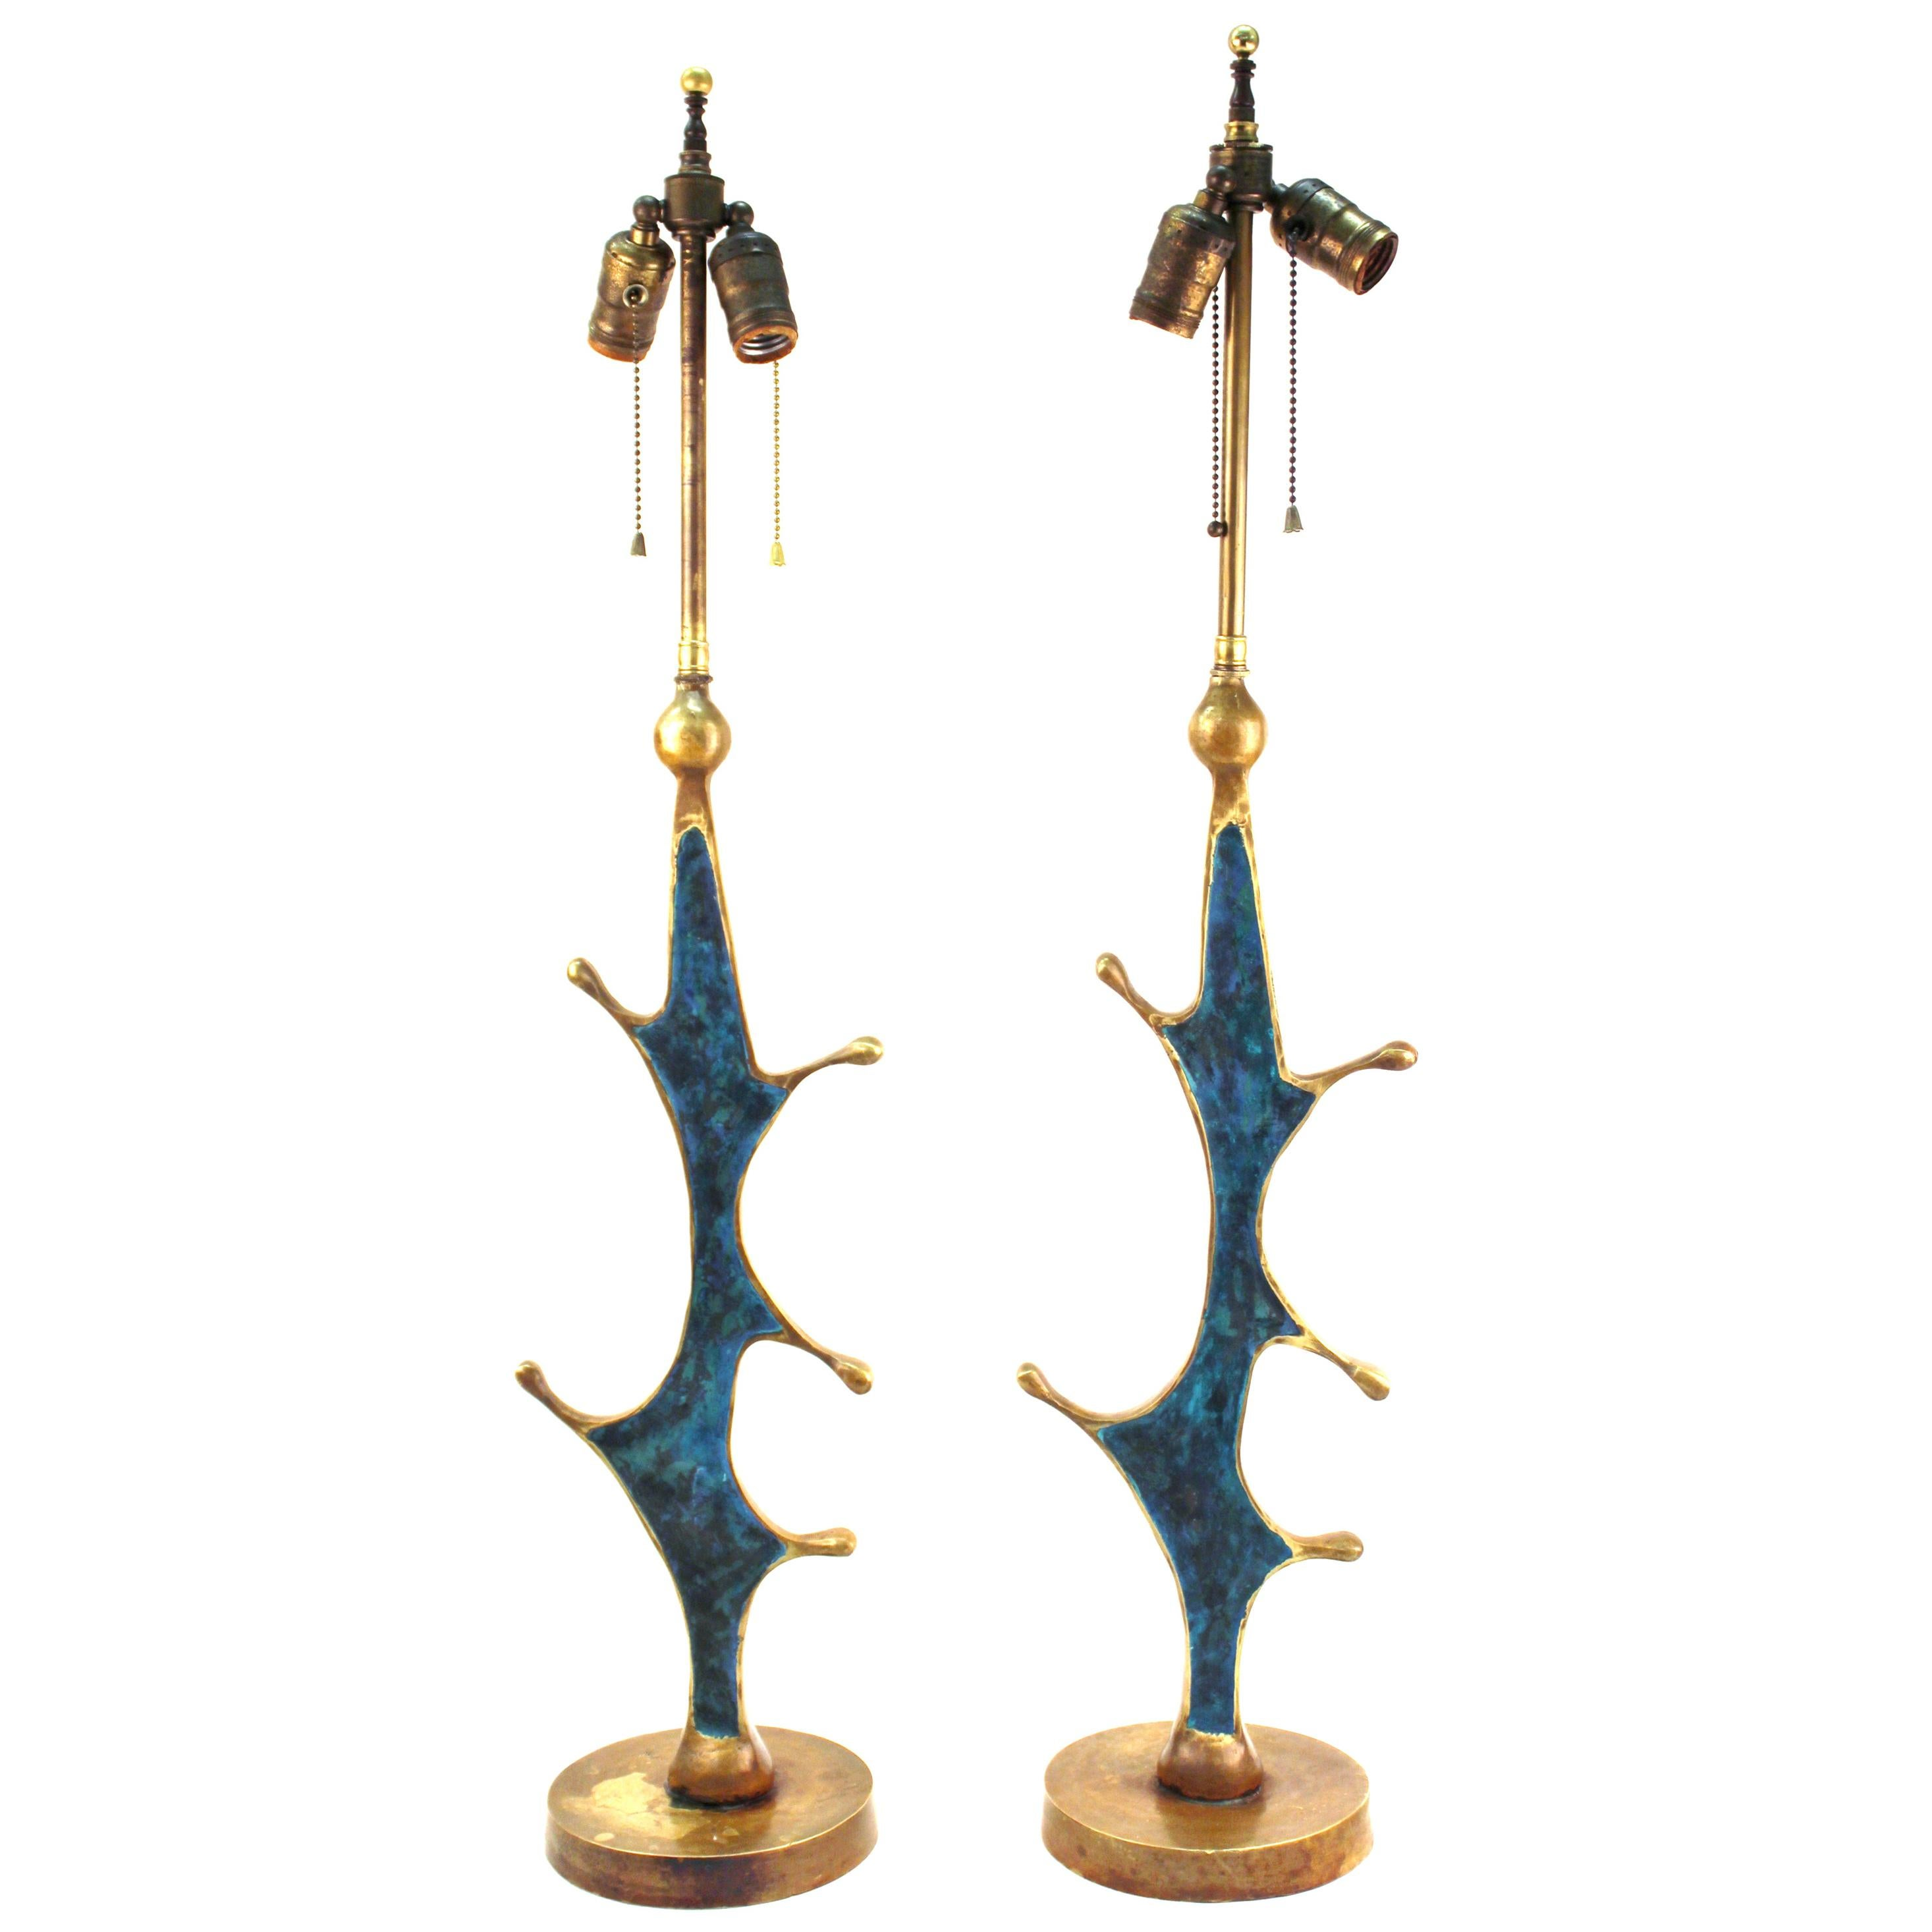 Pepe Mendoza Mid-Century Modern Table Lamps with Turquoise Inlay